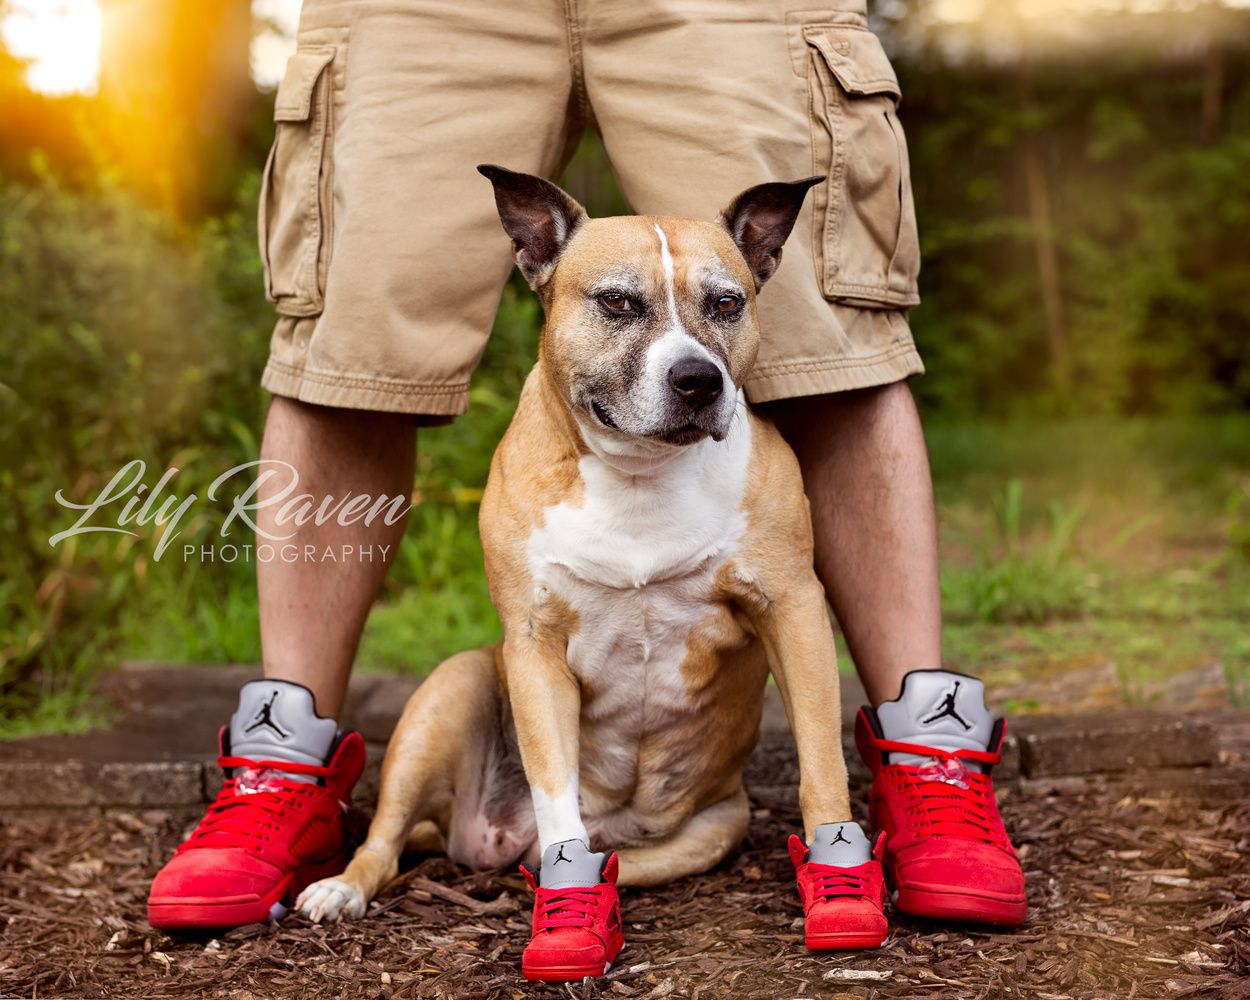 Pet Photography Tips From a Successful Dog Photographer